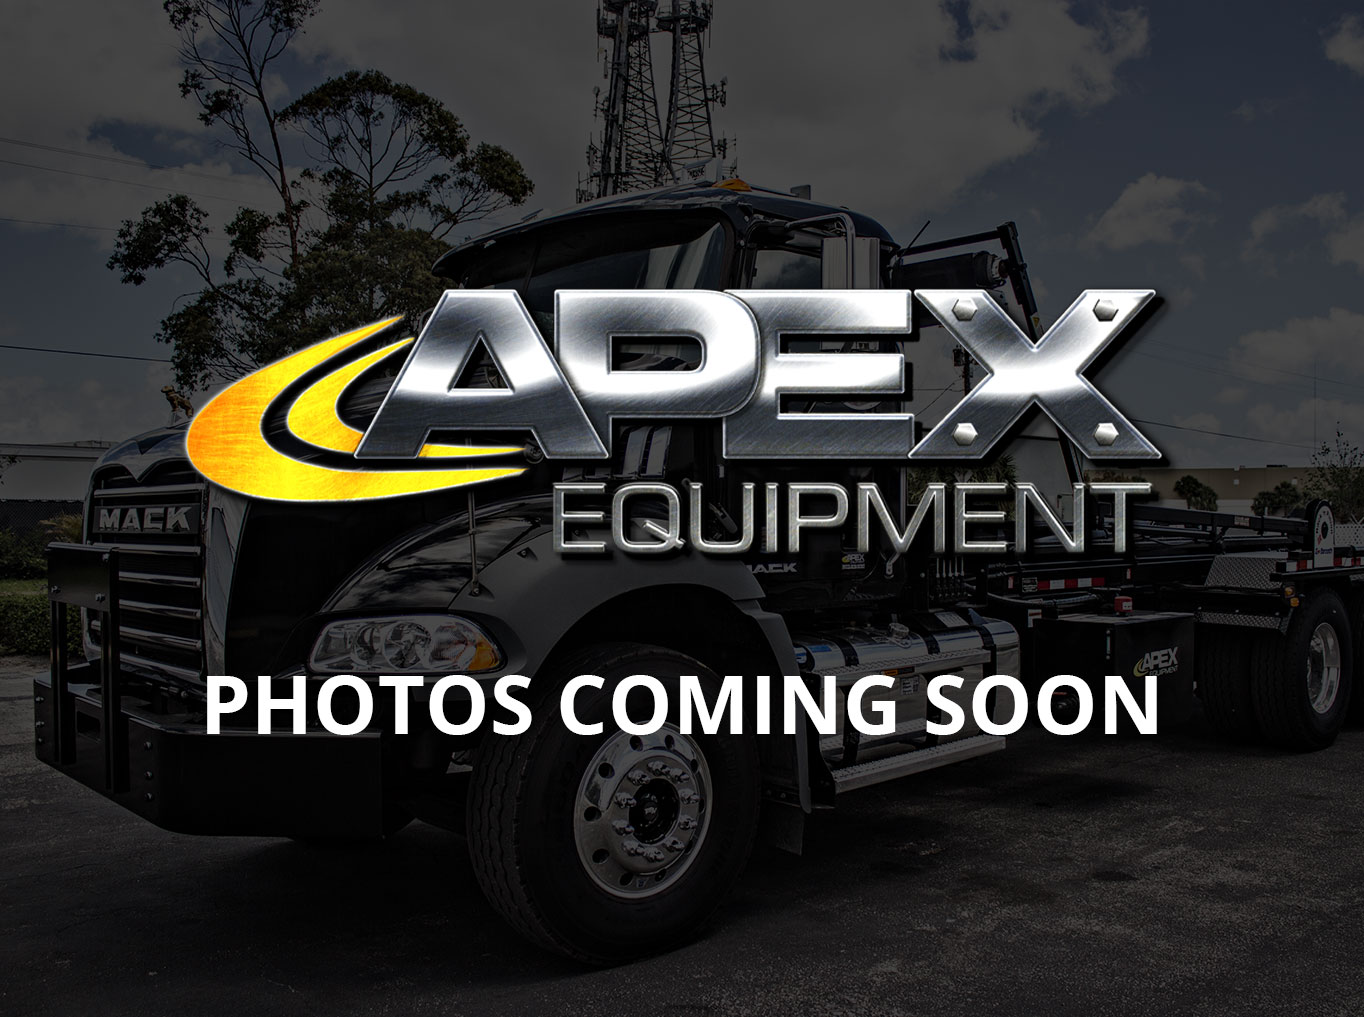 2004 ford f650 4x2  image coming soon